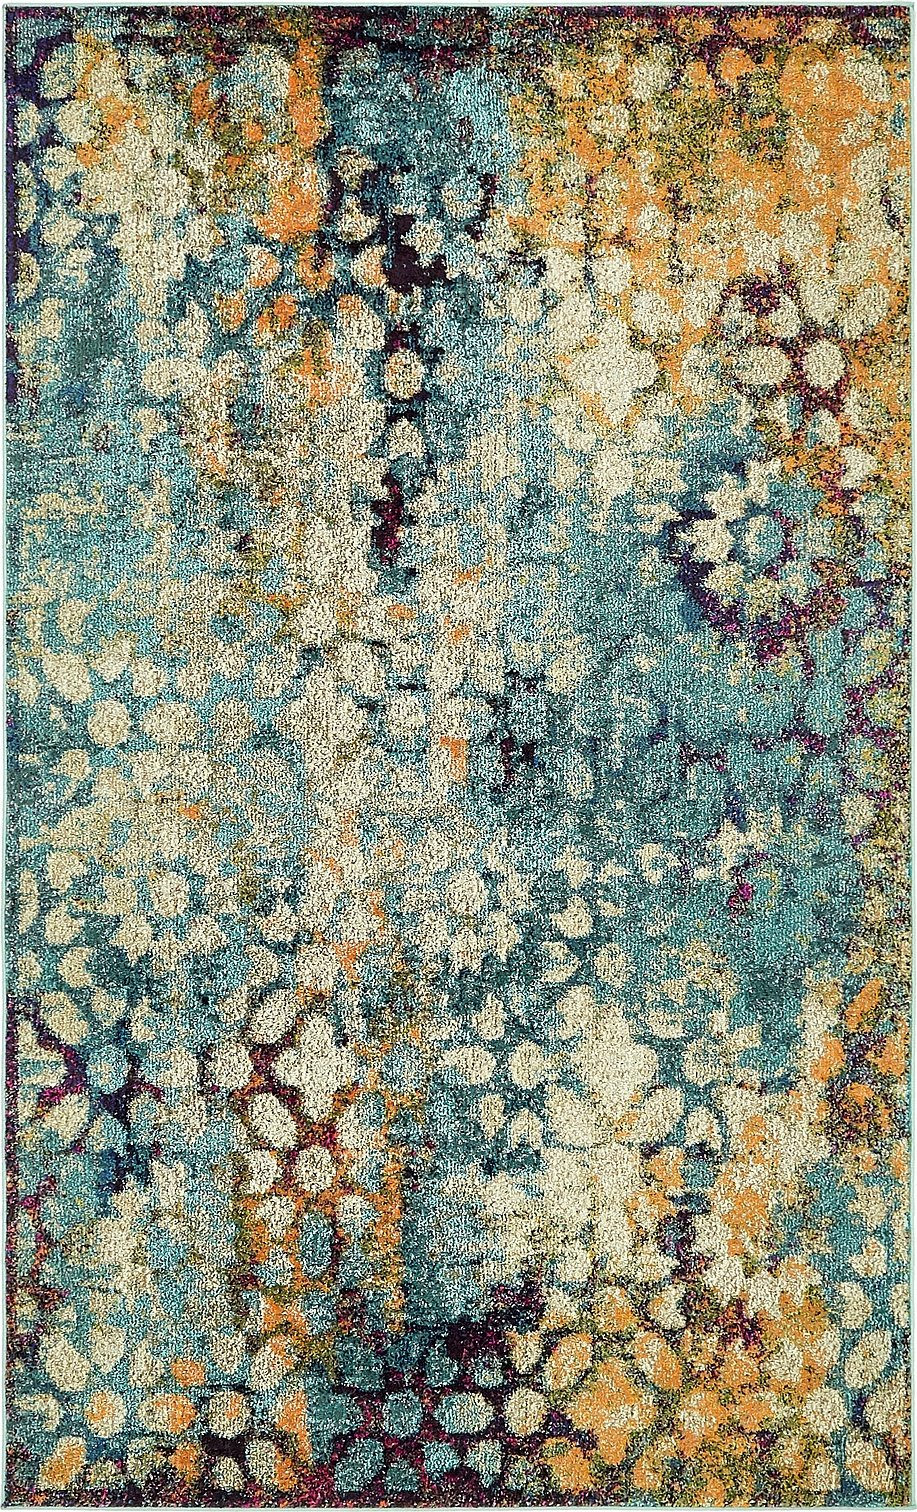 A2Z Rug Modern Contemporary & Traditional Design Rugs, Blue 5' x 8'-Feet Milano Collection Area rug